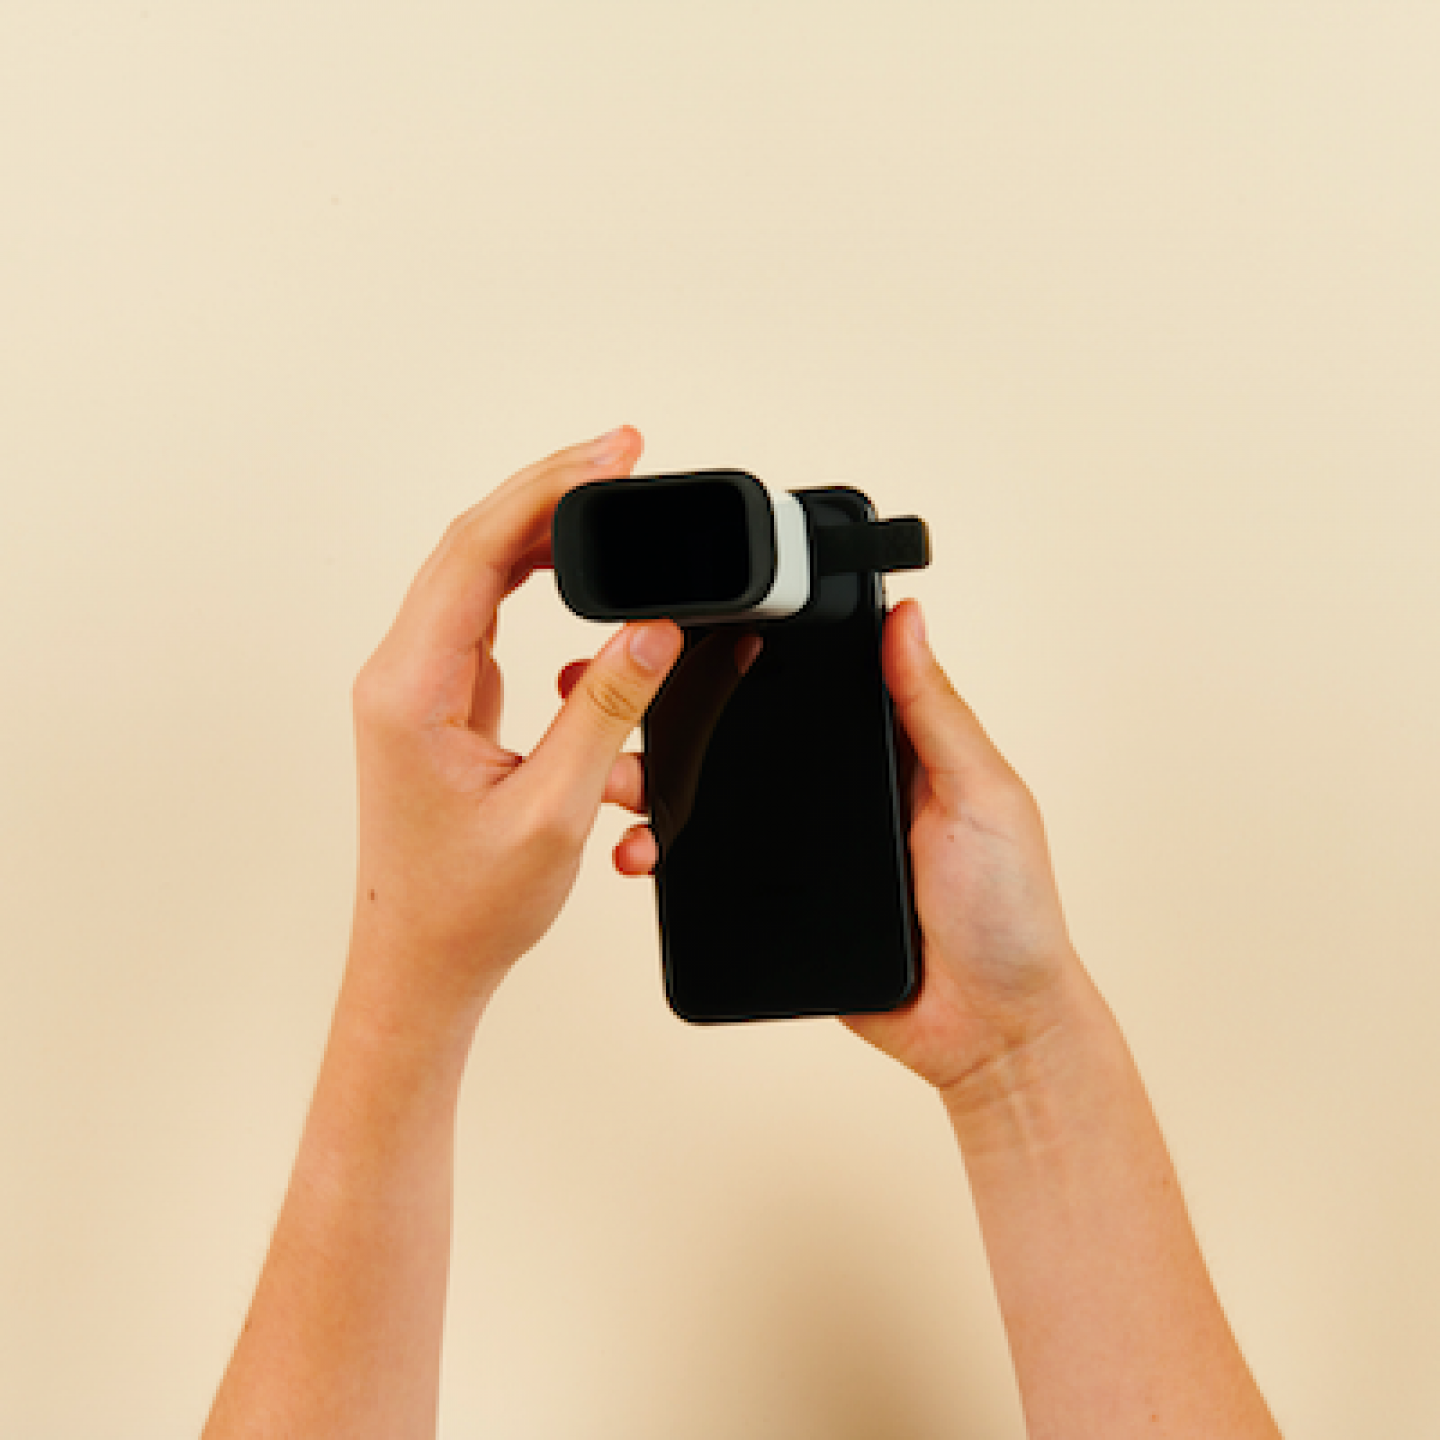 Hands holding a mobile and lens